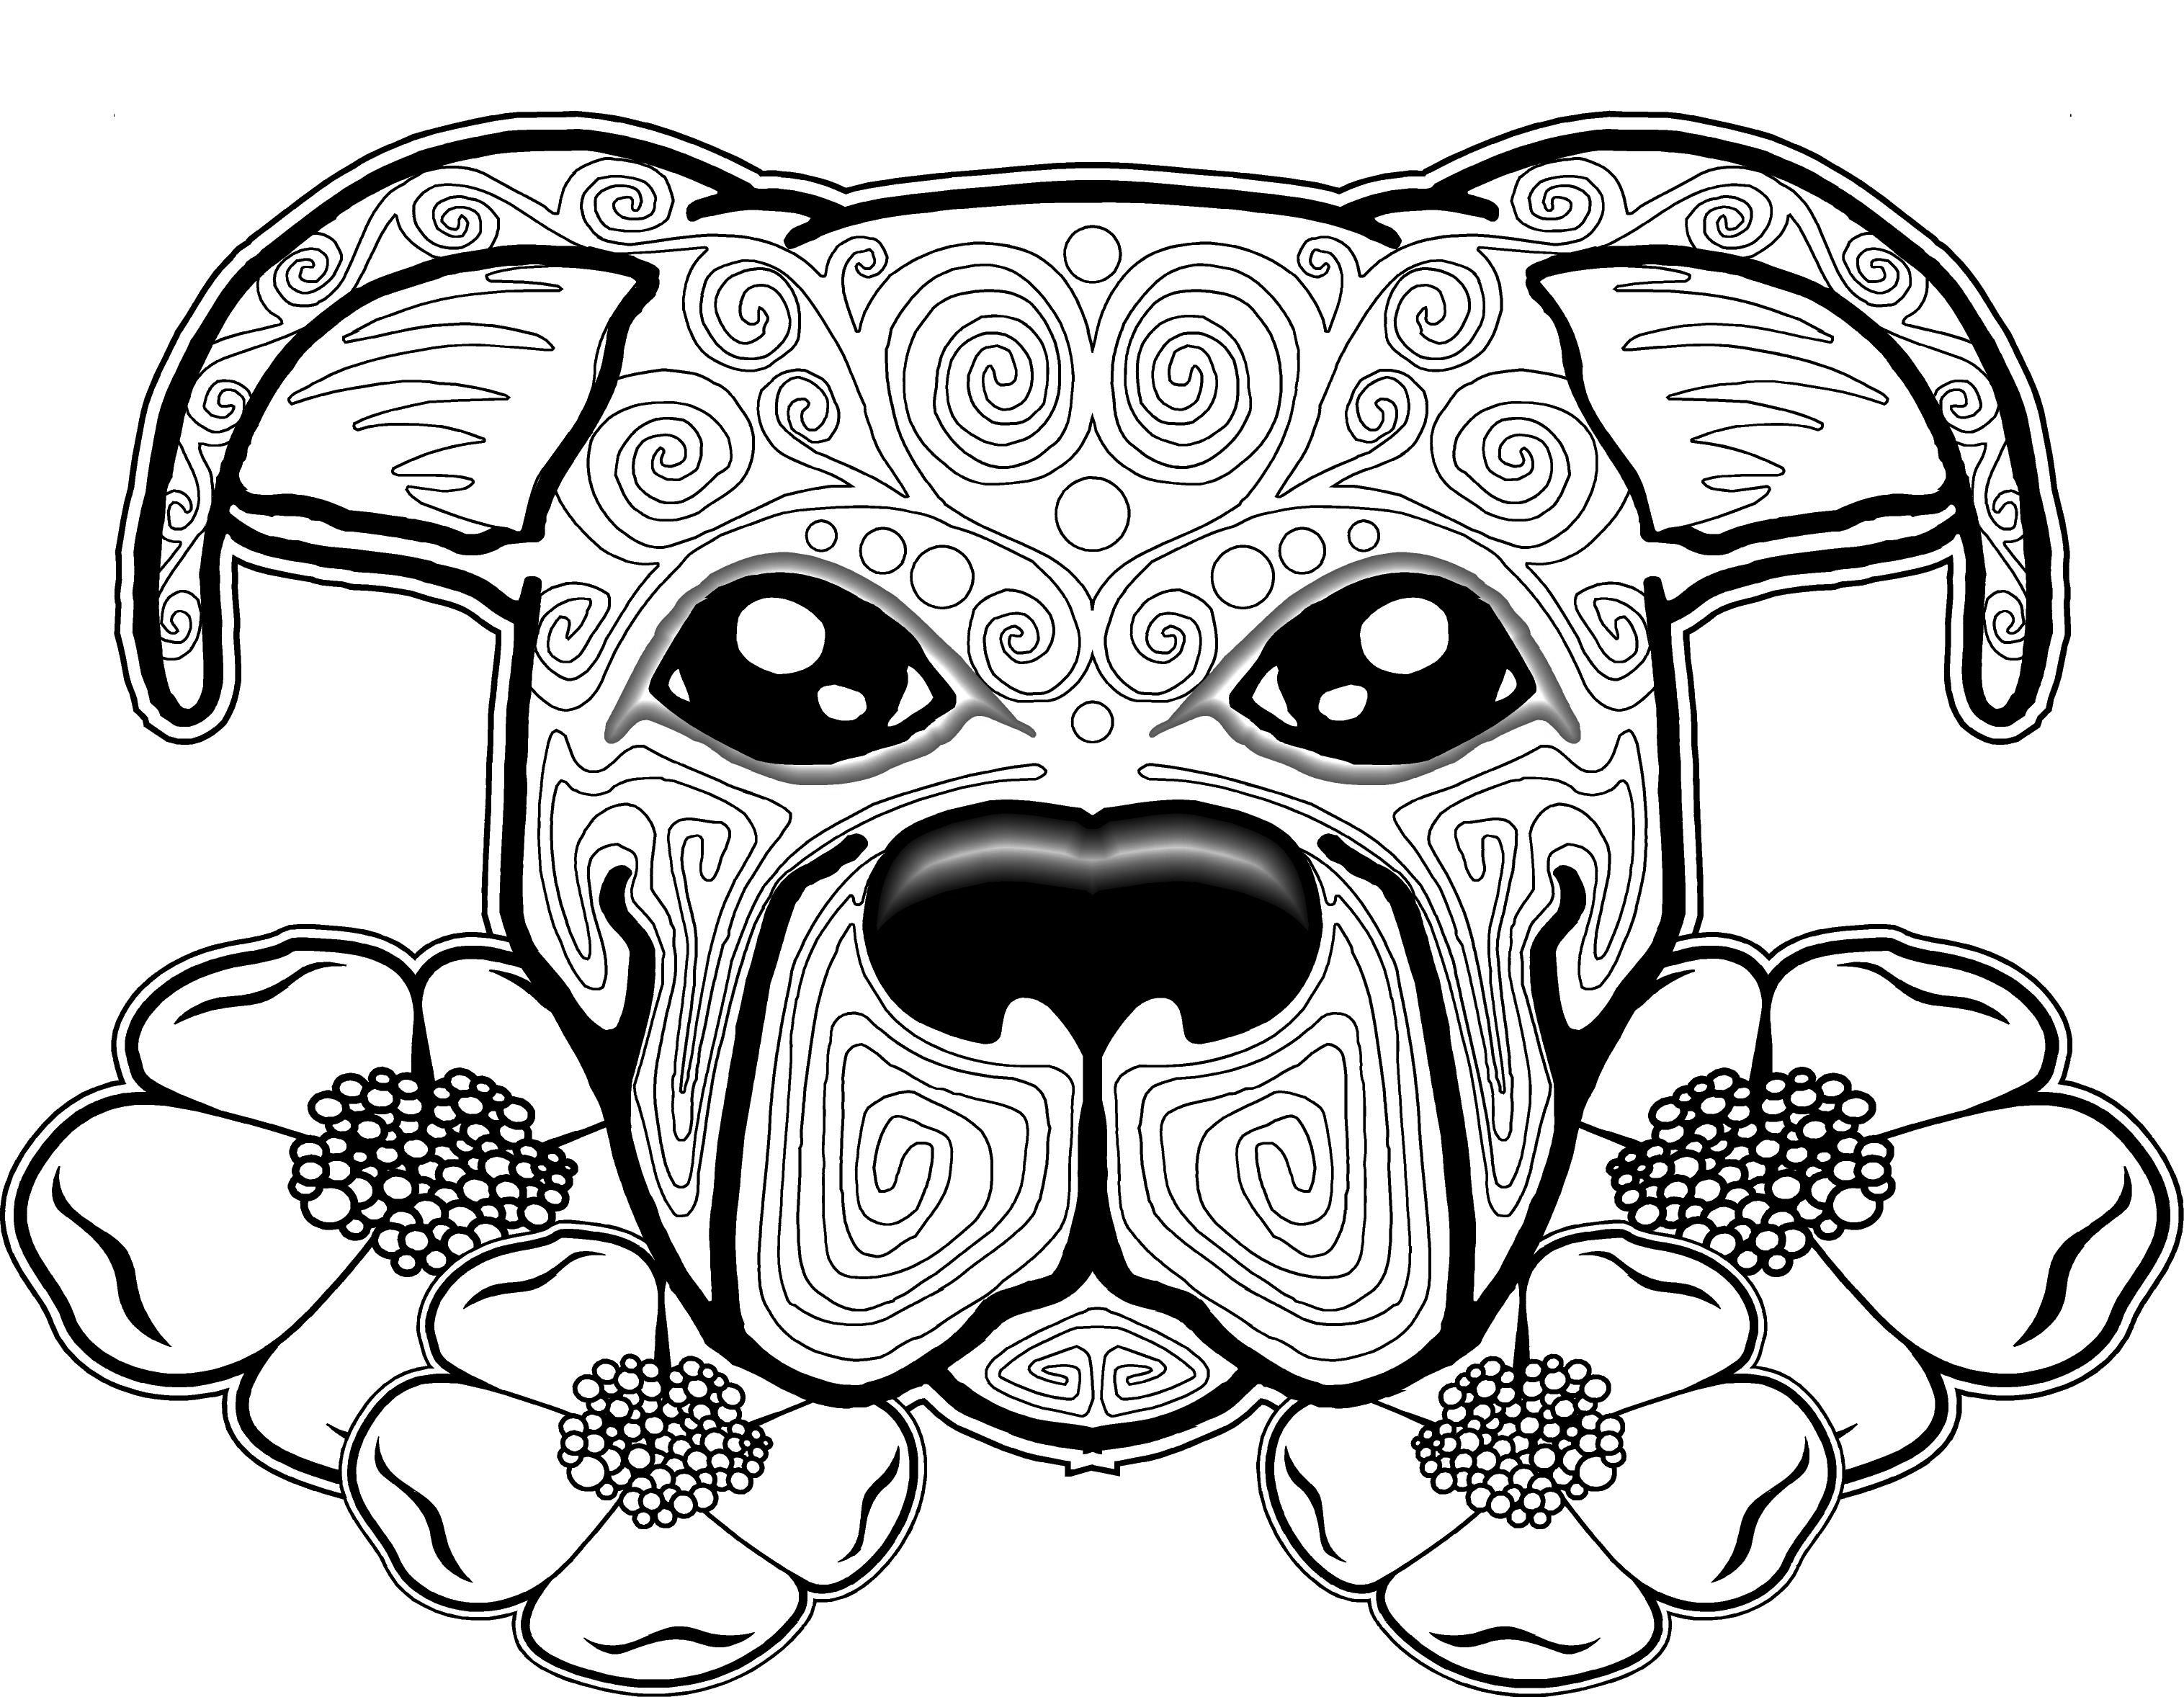 Dog Coloring Page Free Coloring Page Free Coloring Pages For